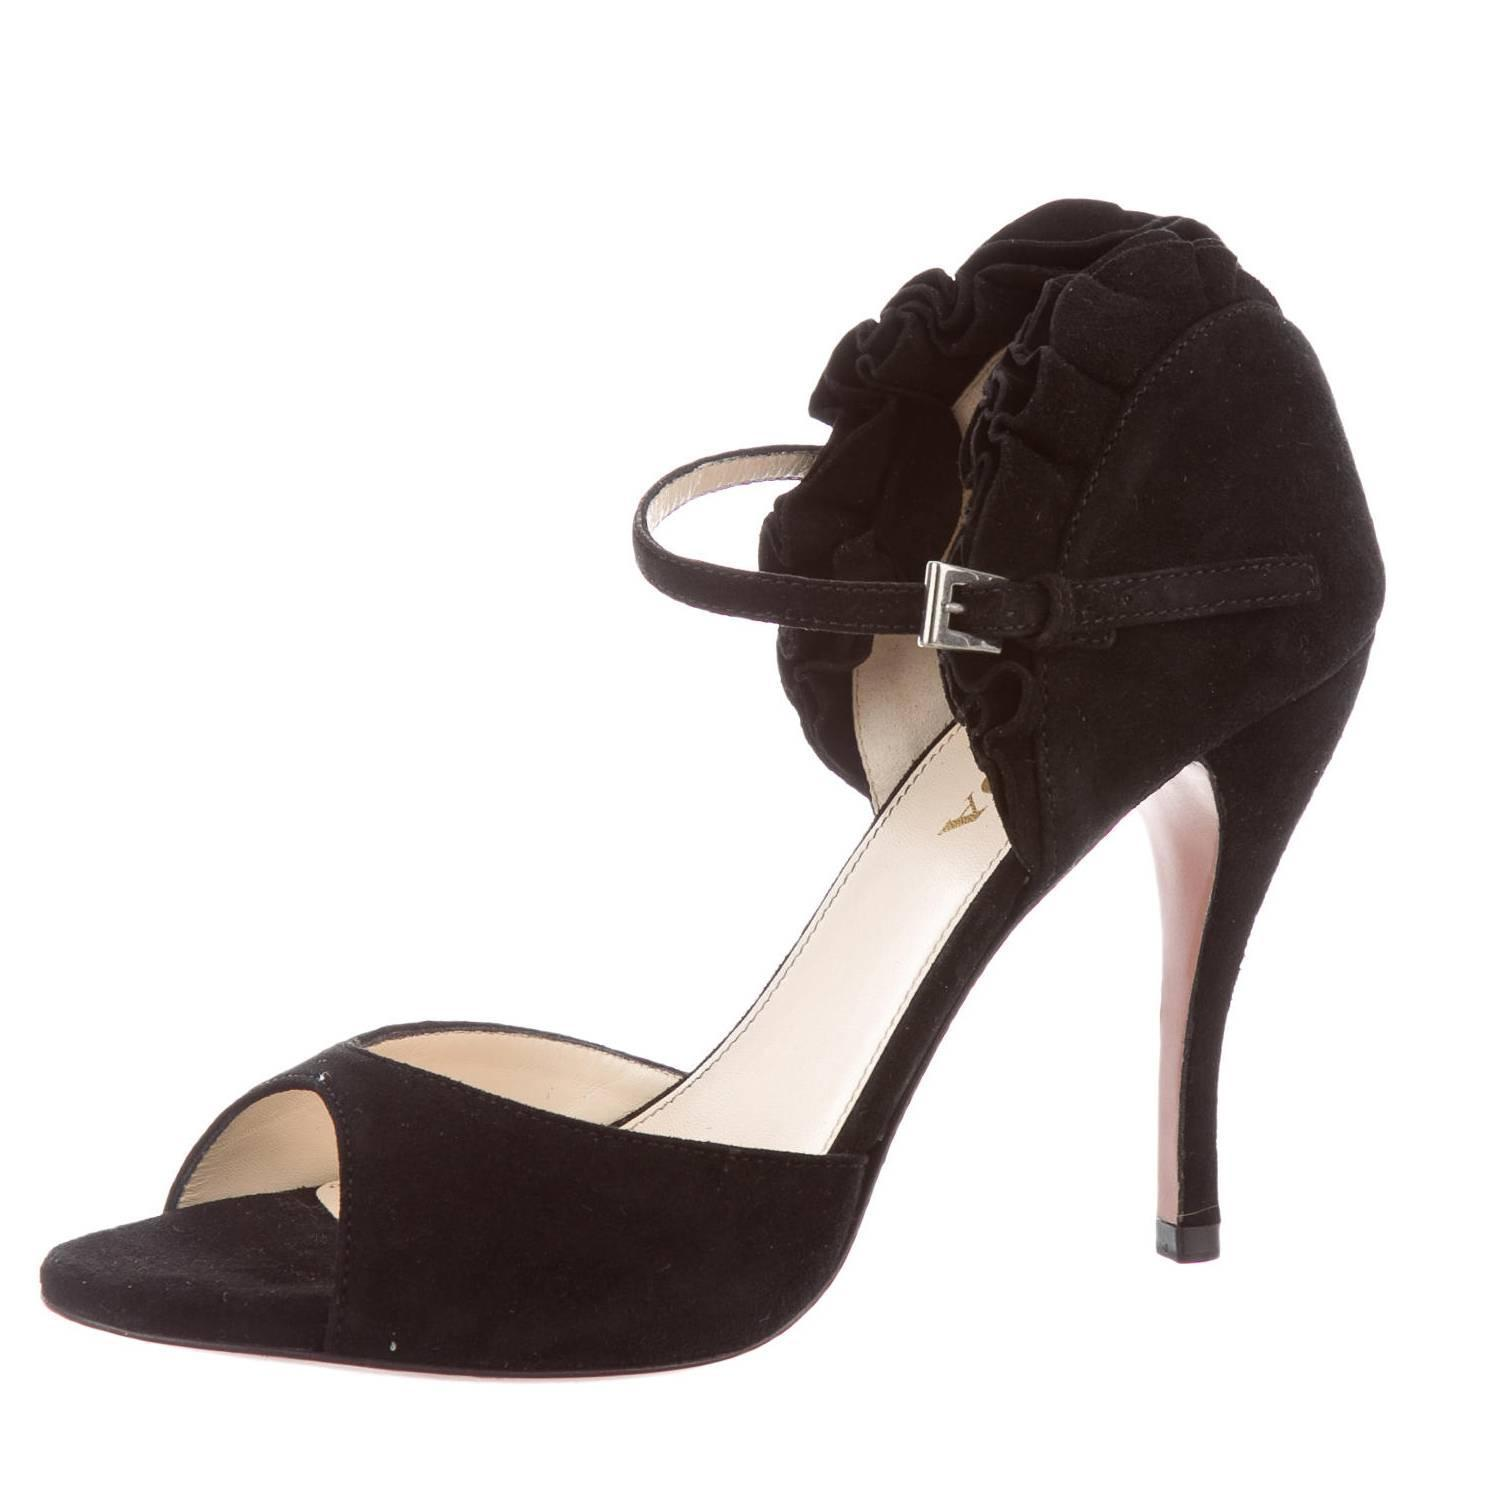 prada new suede ruffle open toe high heels strappy sandals in box at 1stdibs. Black Bedroom Furniture Sets. Home Design Ideas